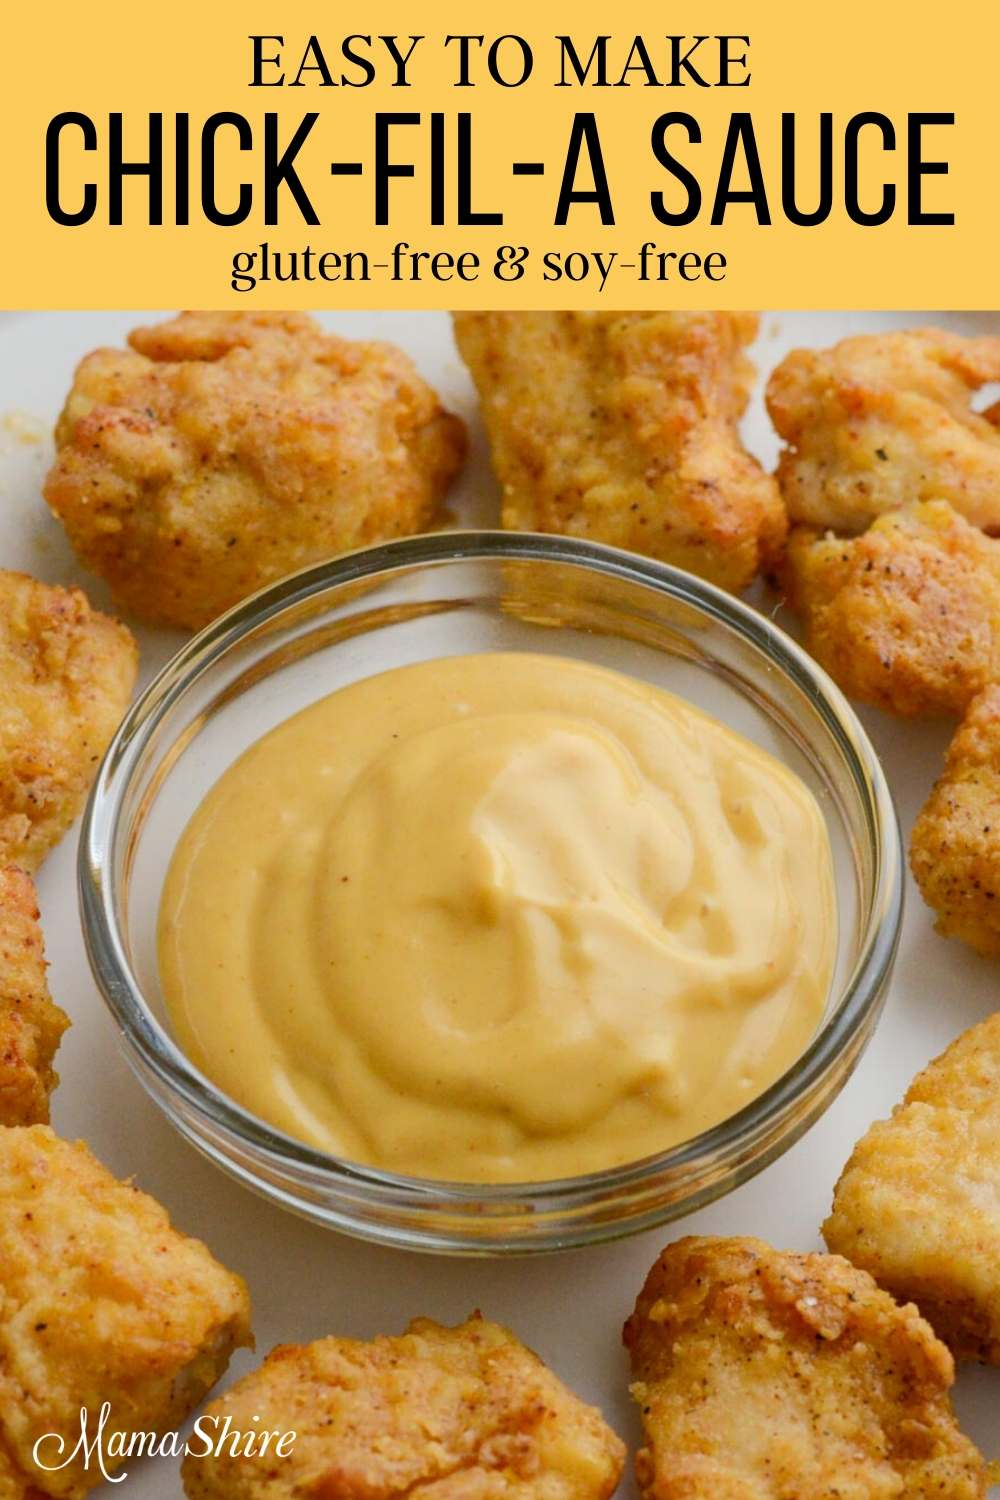 A closeup picture of homemade Chick-Fil-A sauce